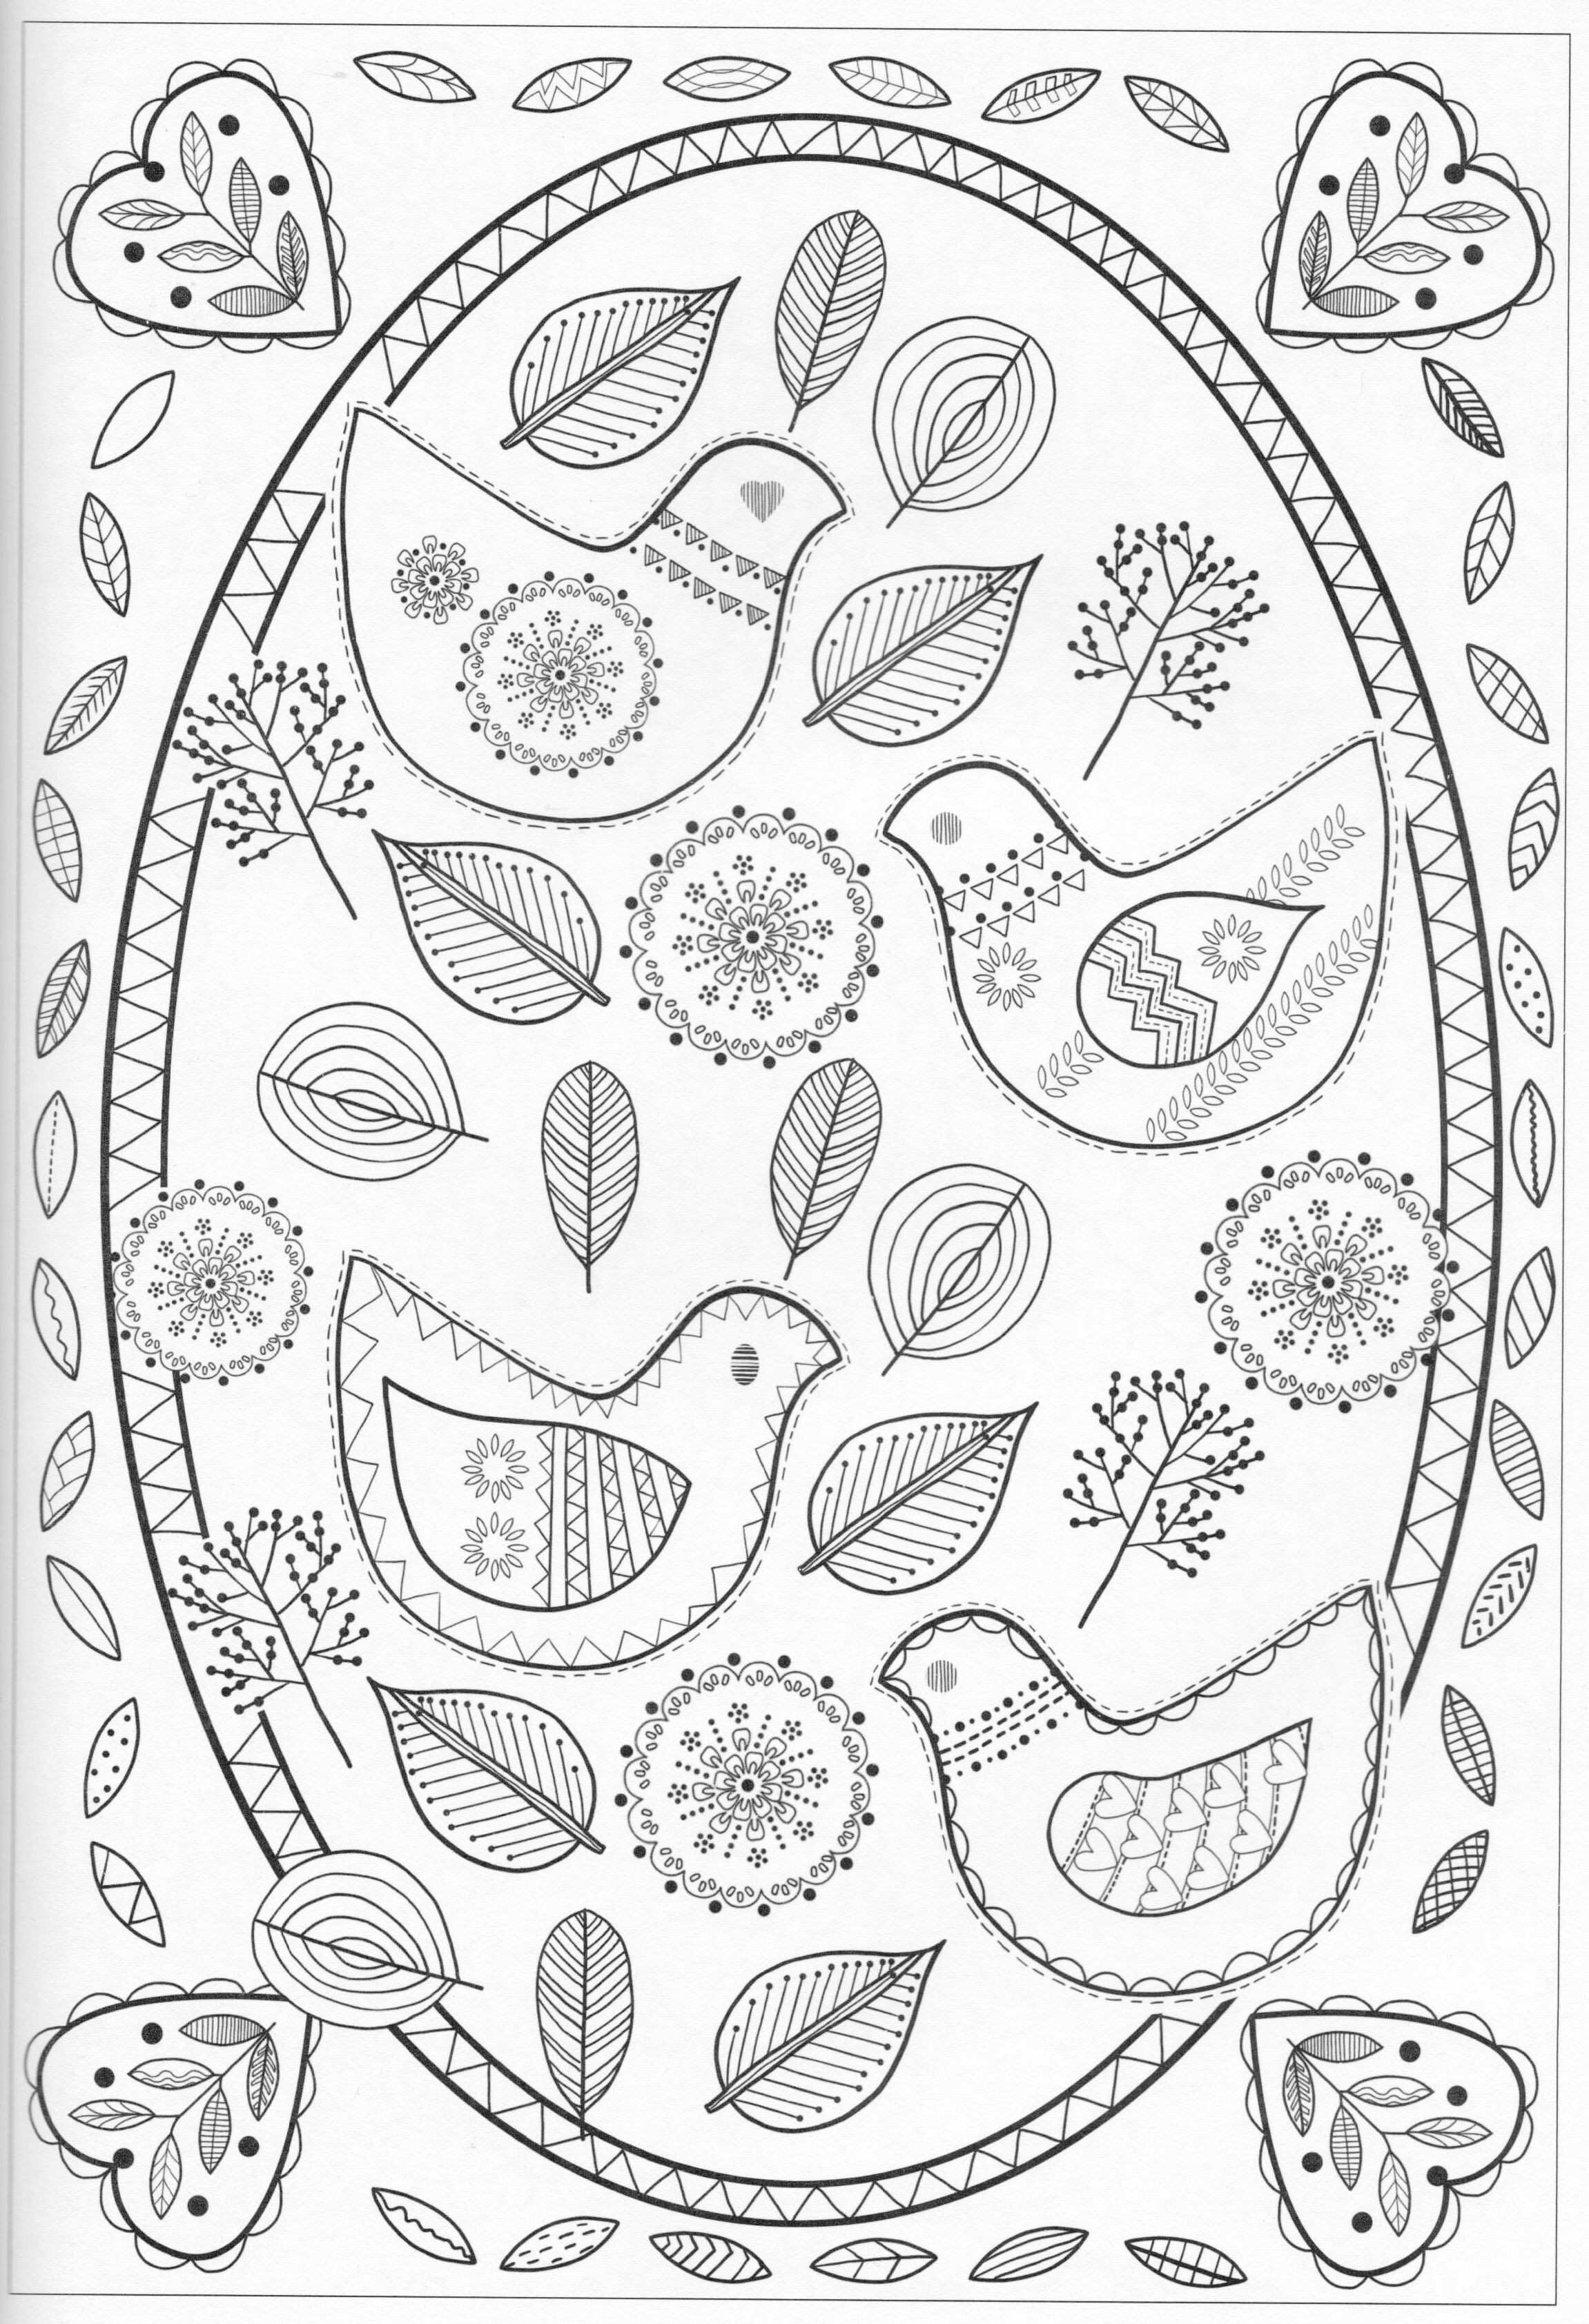 B Coloring Page B Coloring Page Lovely Pj Masks Free Coloring Pages Free Coloring